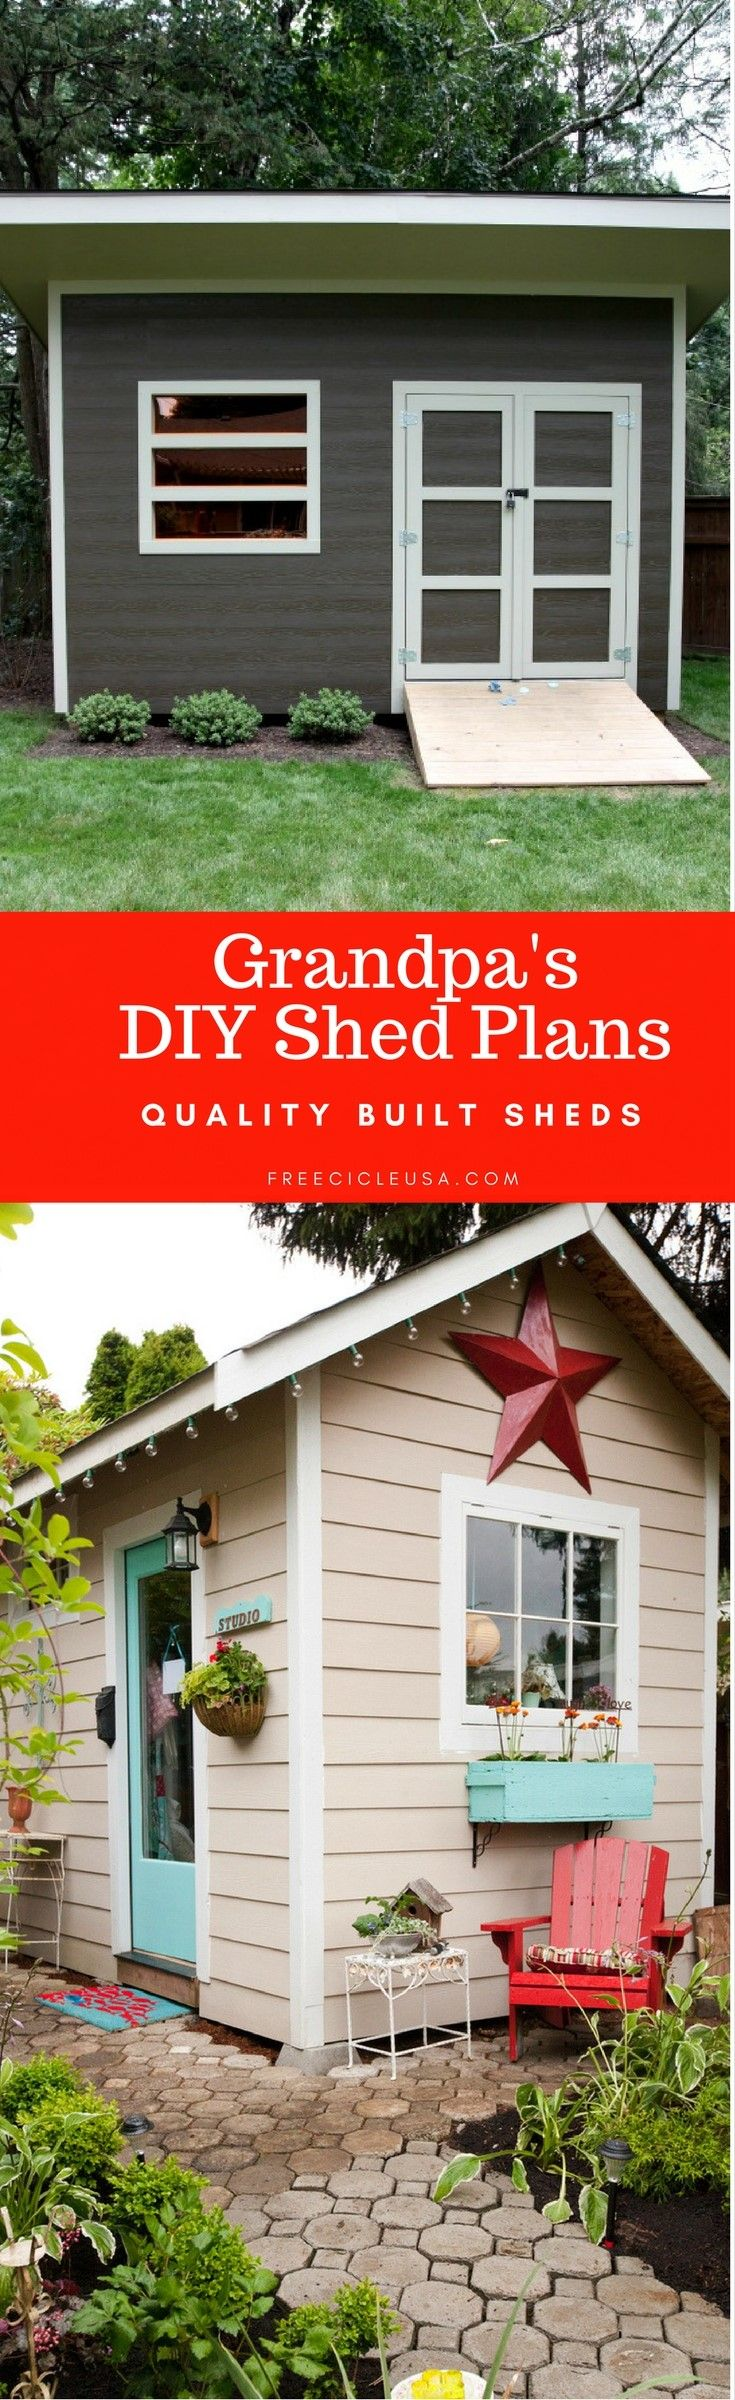 best 25 backyard sheds ideas on pinterest backyard storage best 25 backyard sheds ideas on pinterest backyard storage sheds storage sheds and shed